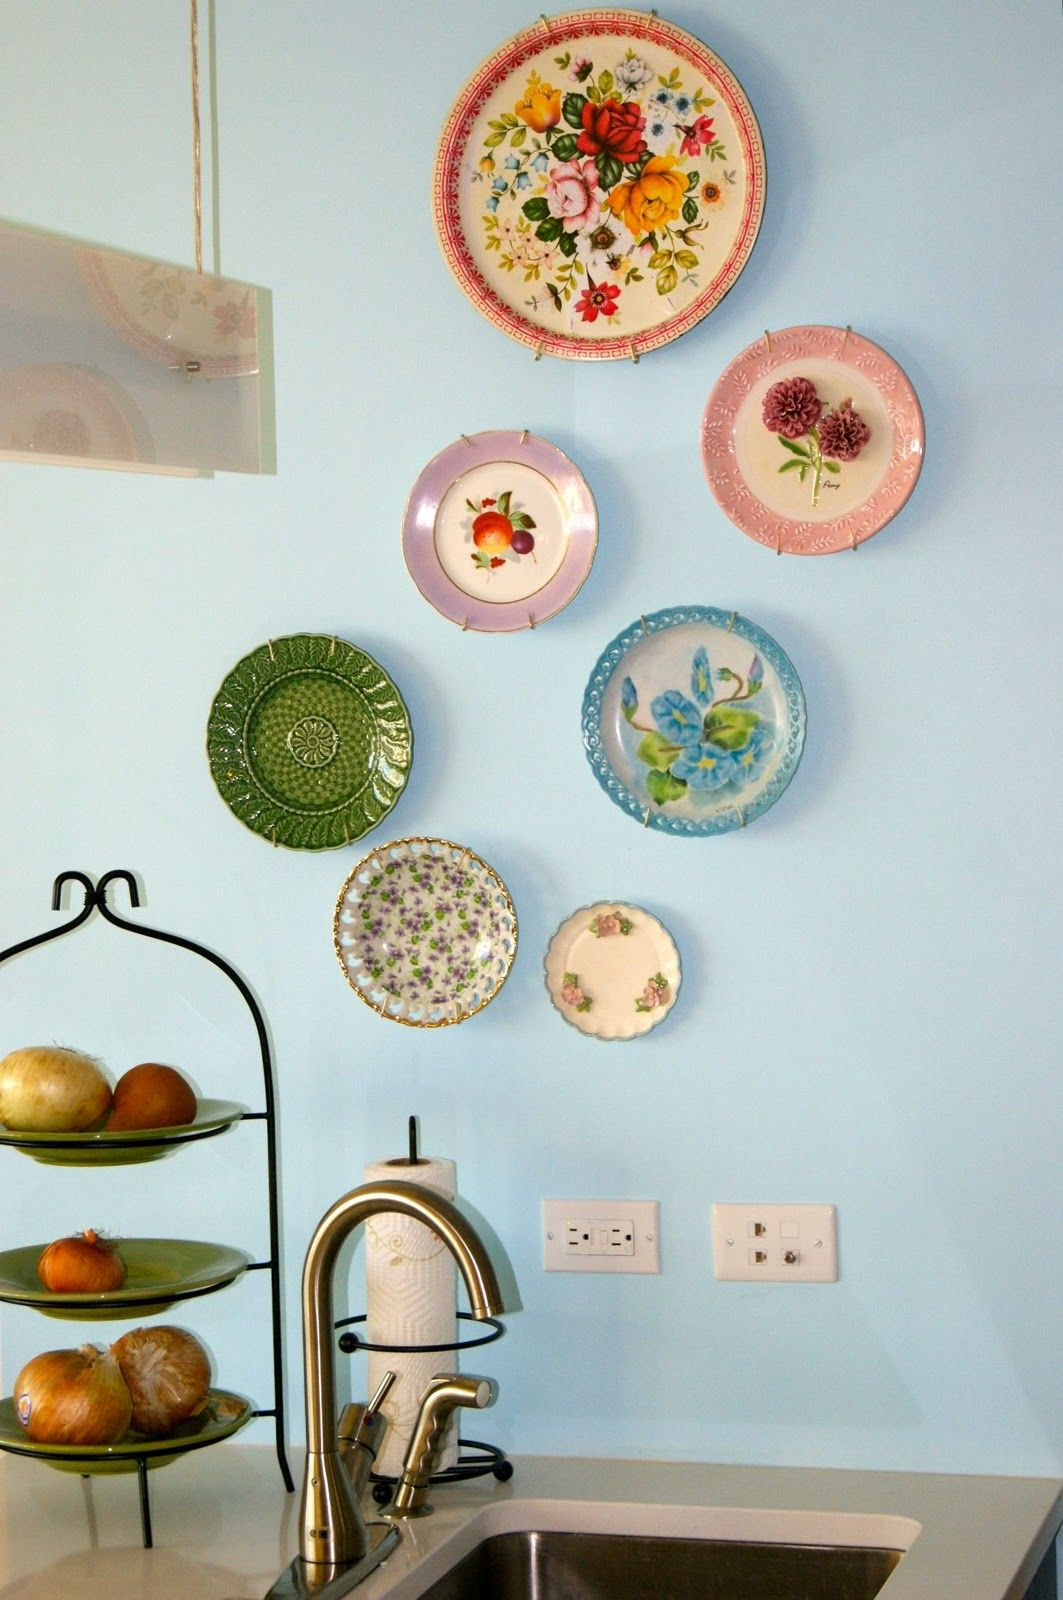 Light blue is a great background for any color plate.  Plates on